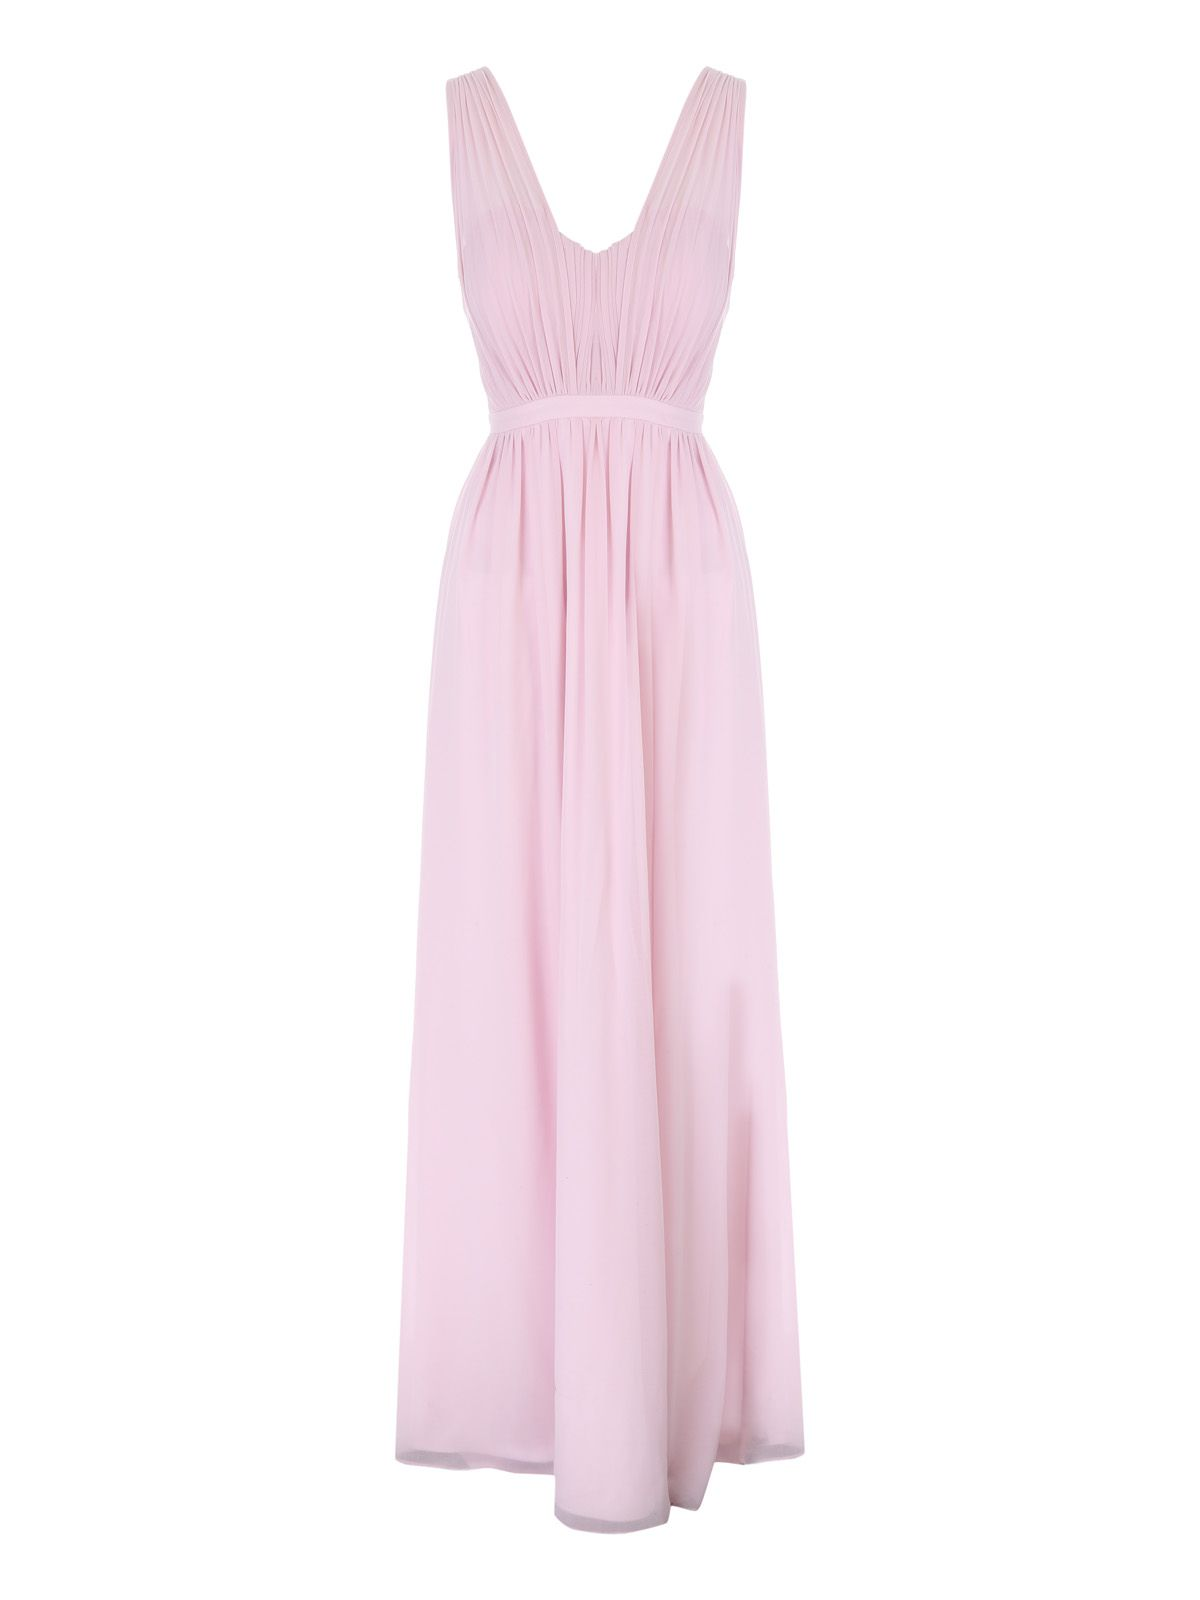 Jane Norman Pink Pleated Maxi Dress, Pastel Pink